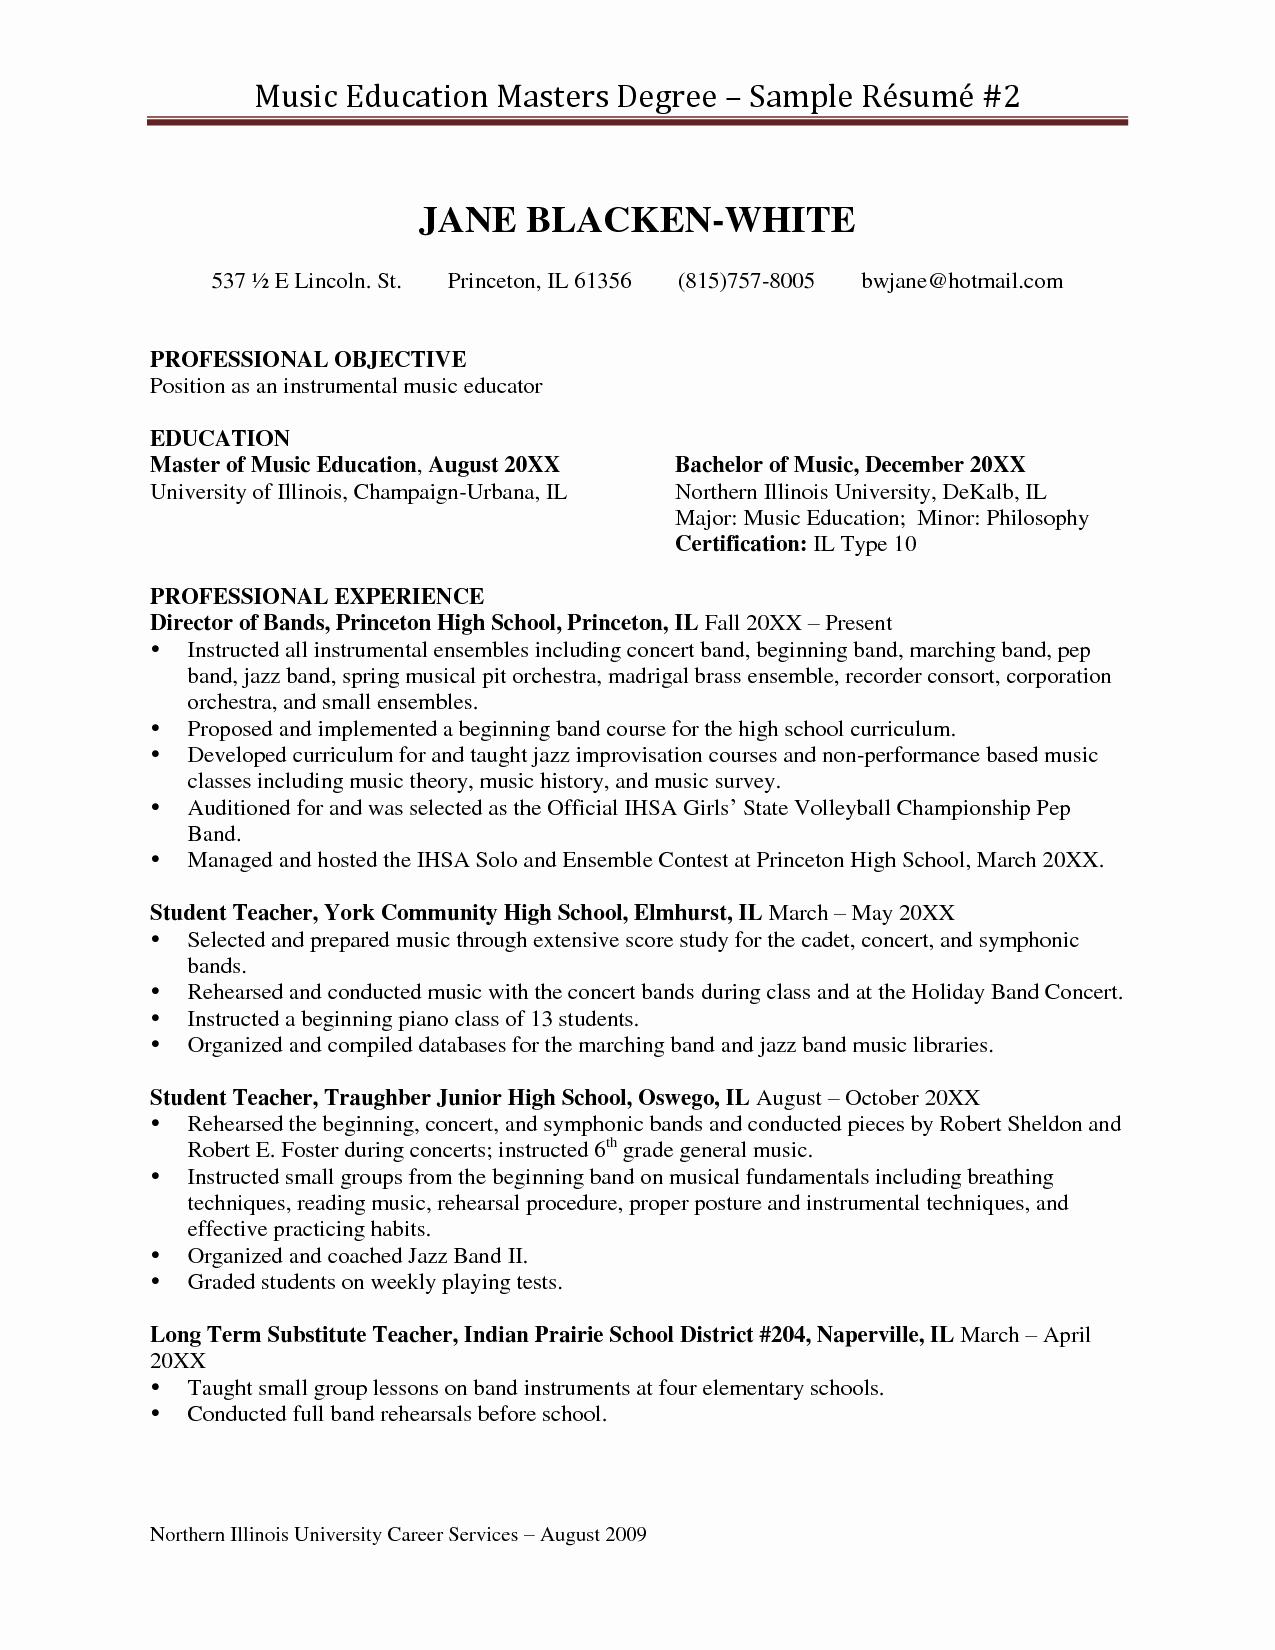 Grad School Resume Template Inspirational Graduate Teachers Resume Example Google Search